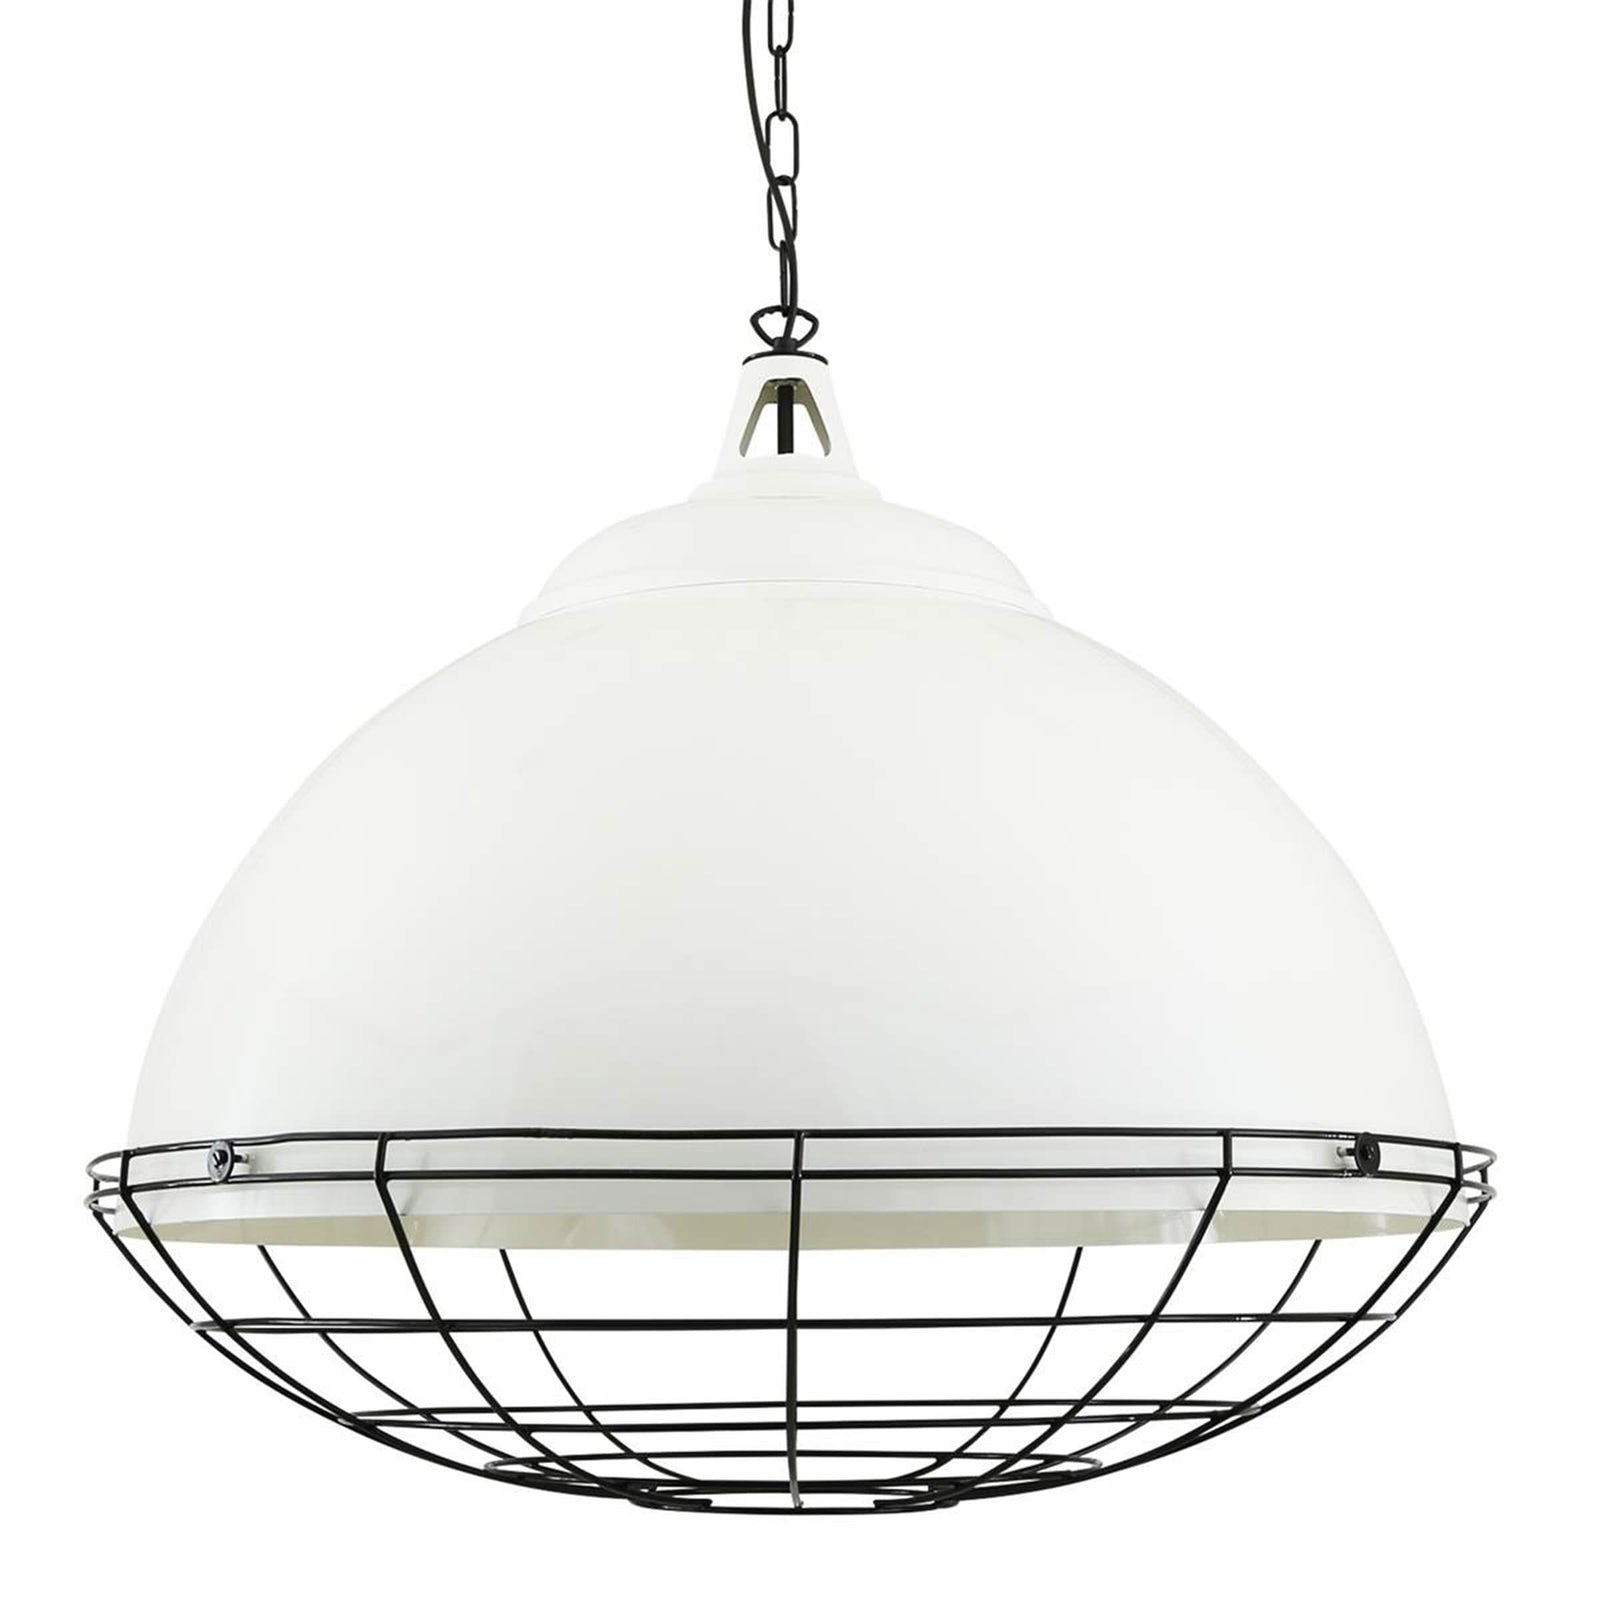 Mullan Lighting Lighting White Brussels Pendant